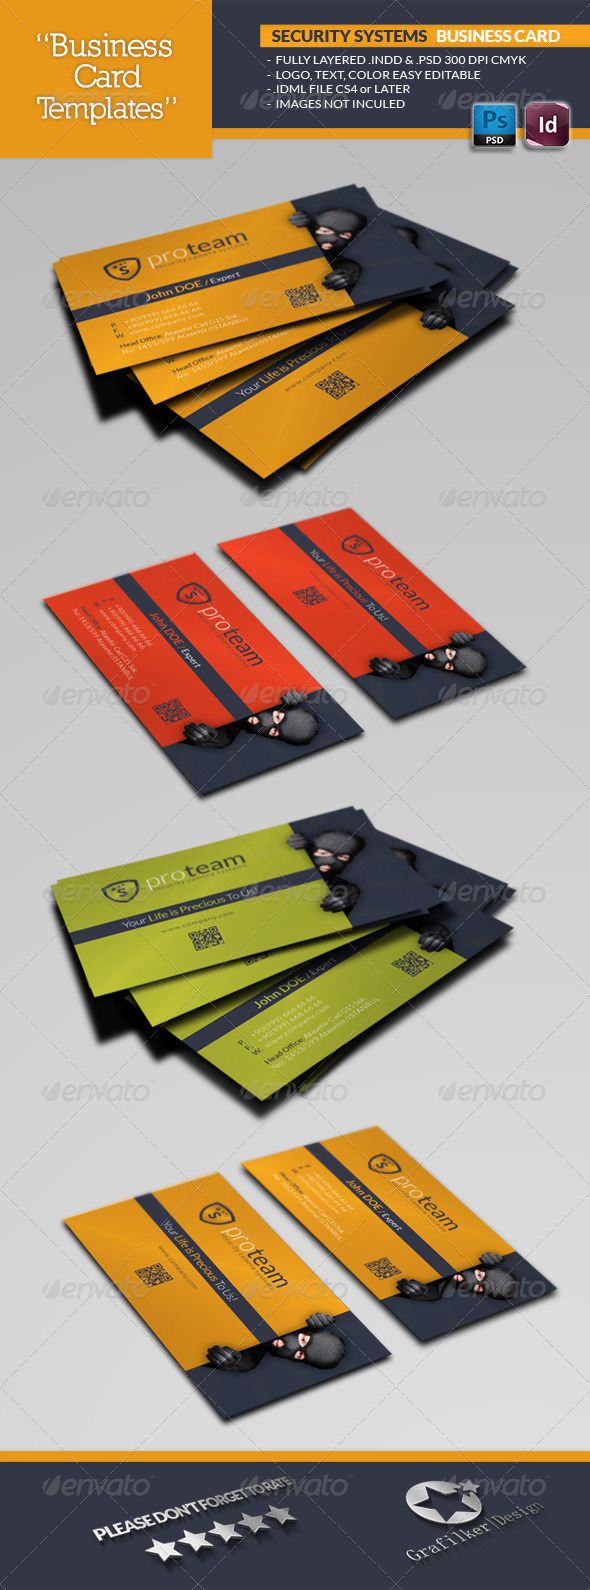 GraphicRiver Security Systems Business Card Template 4735782